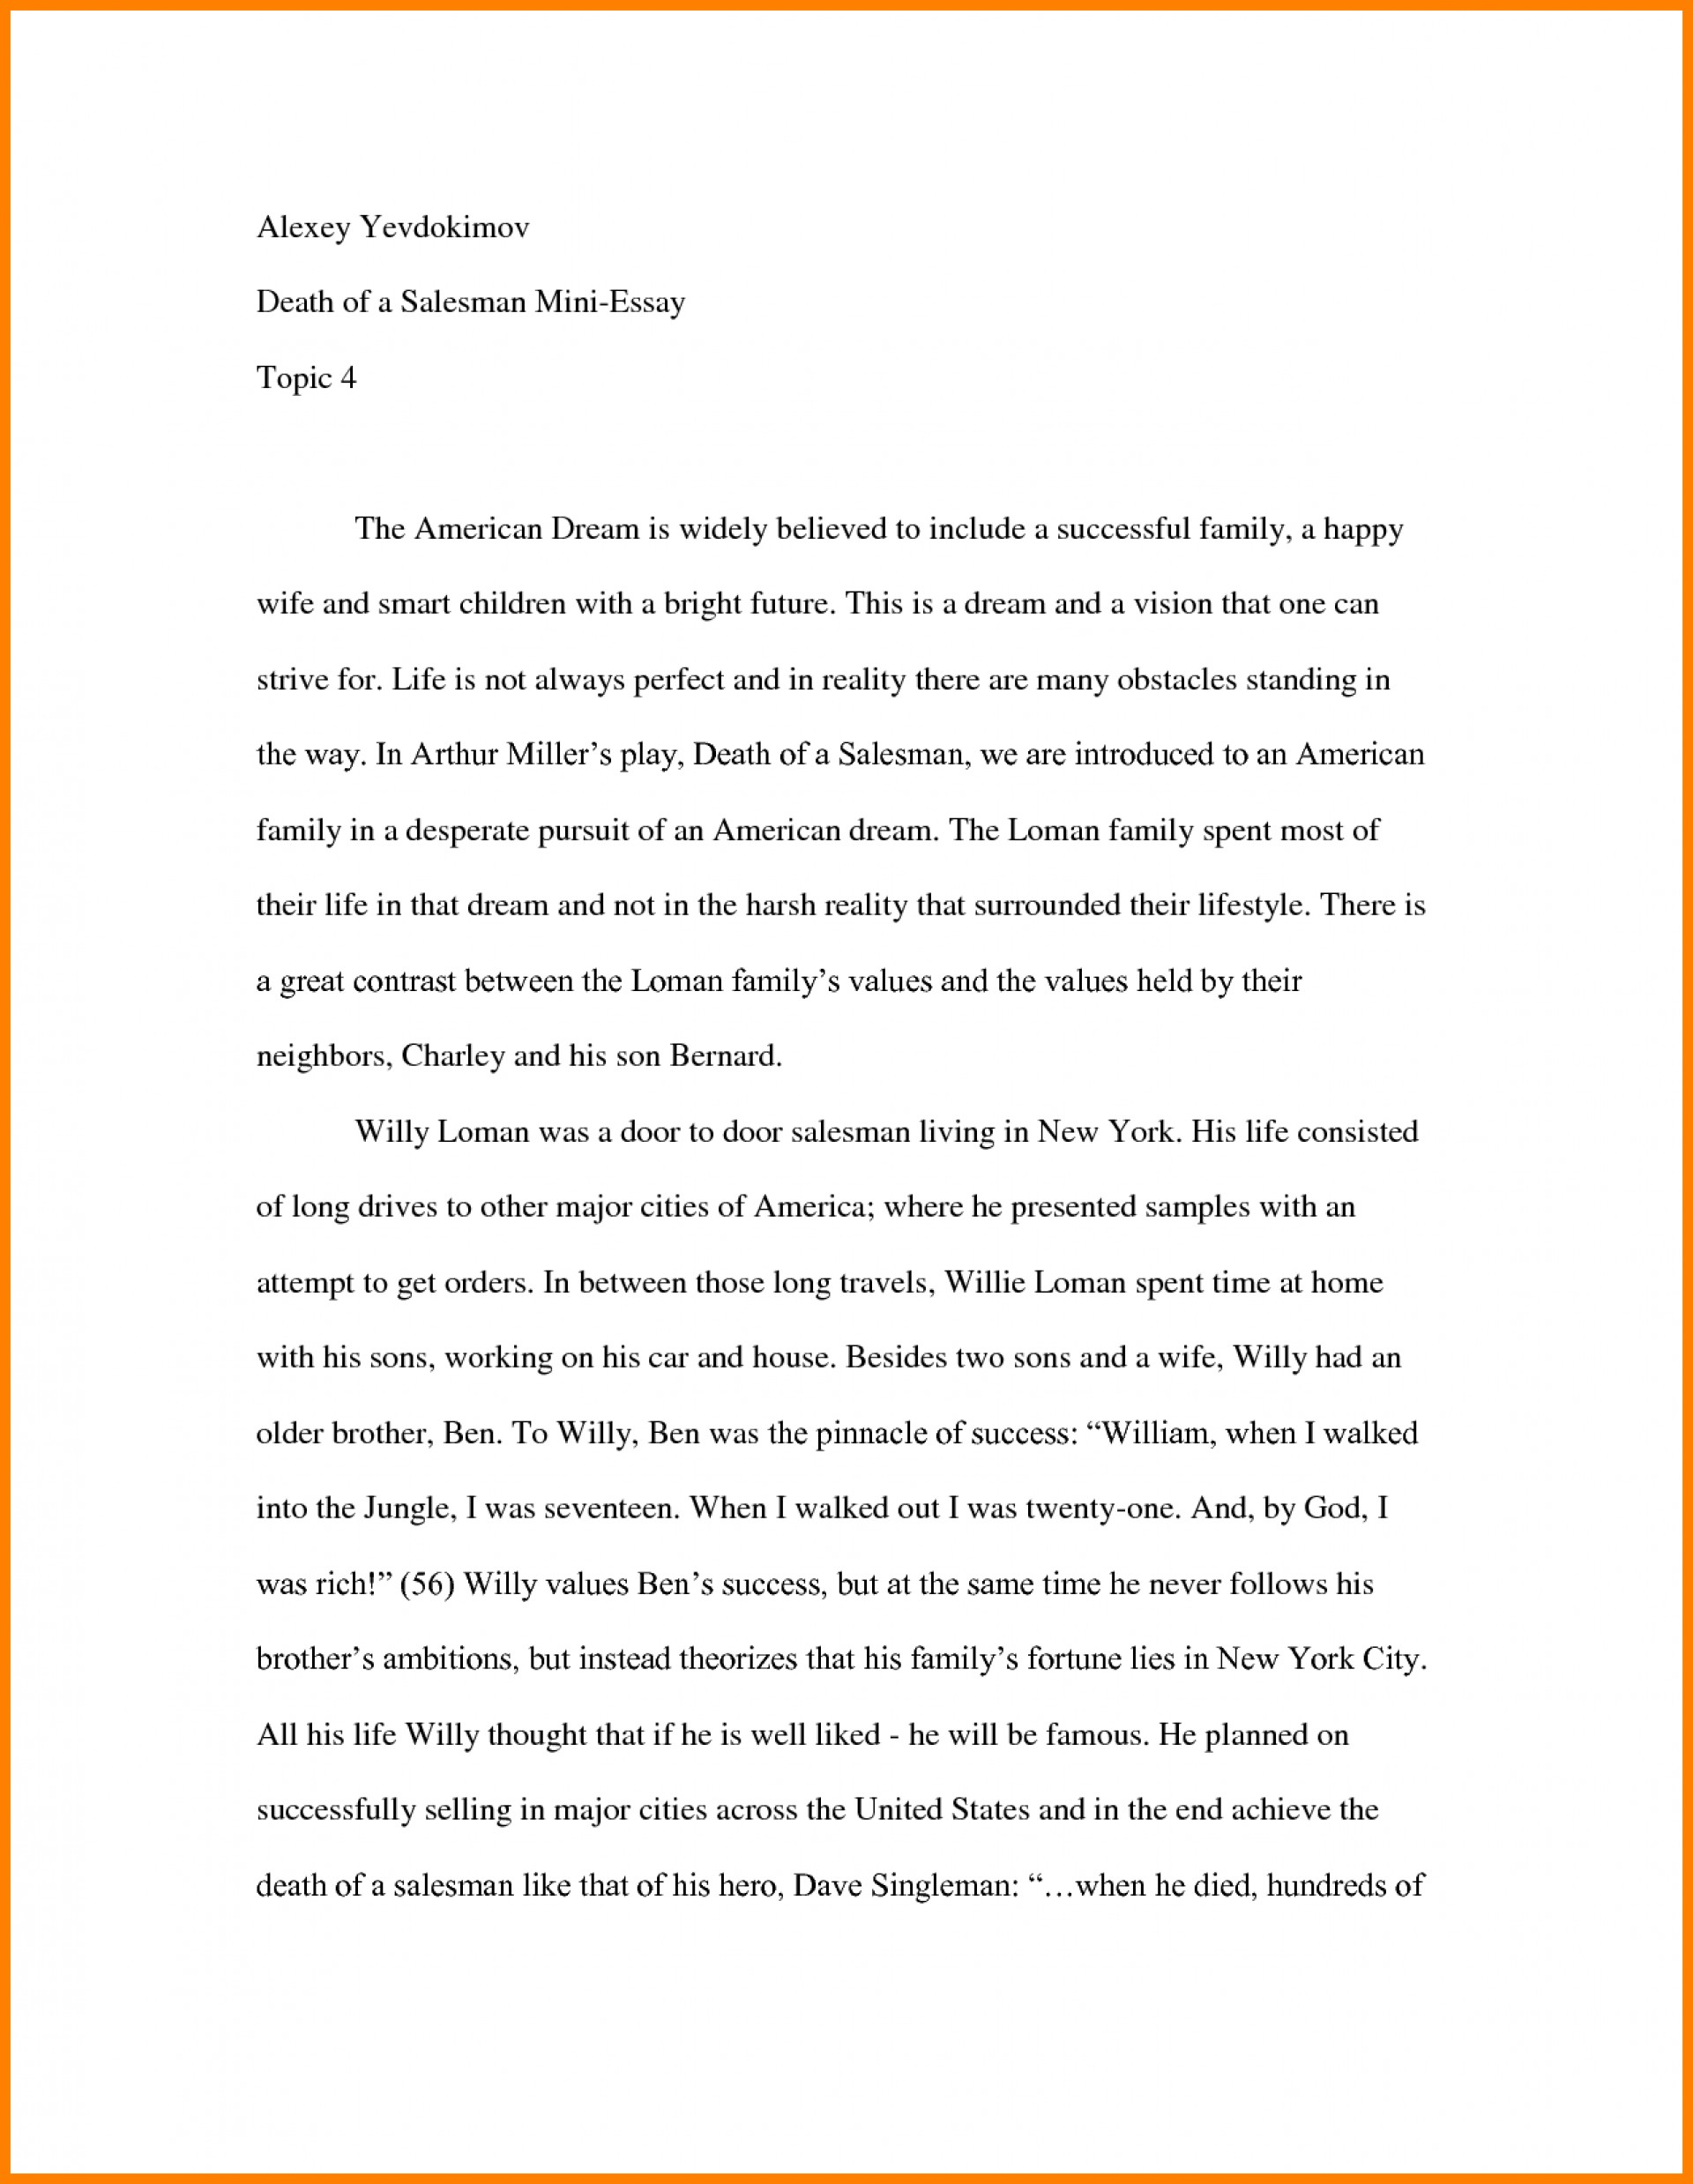 004 How To Start Off An Essay About Yourself College Awesome A Conclusion Application 1920